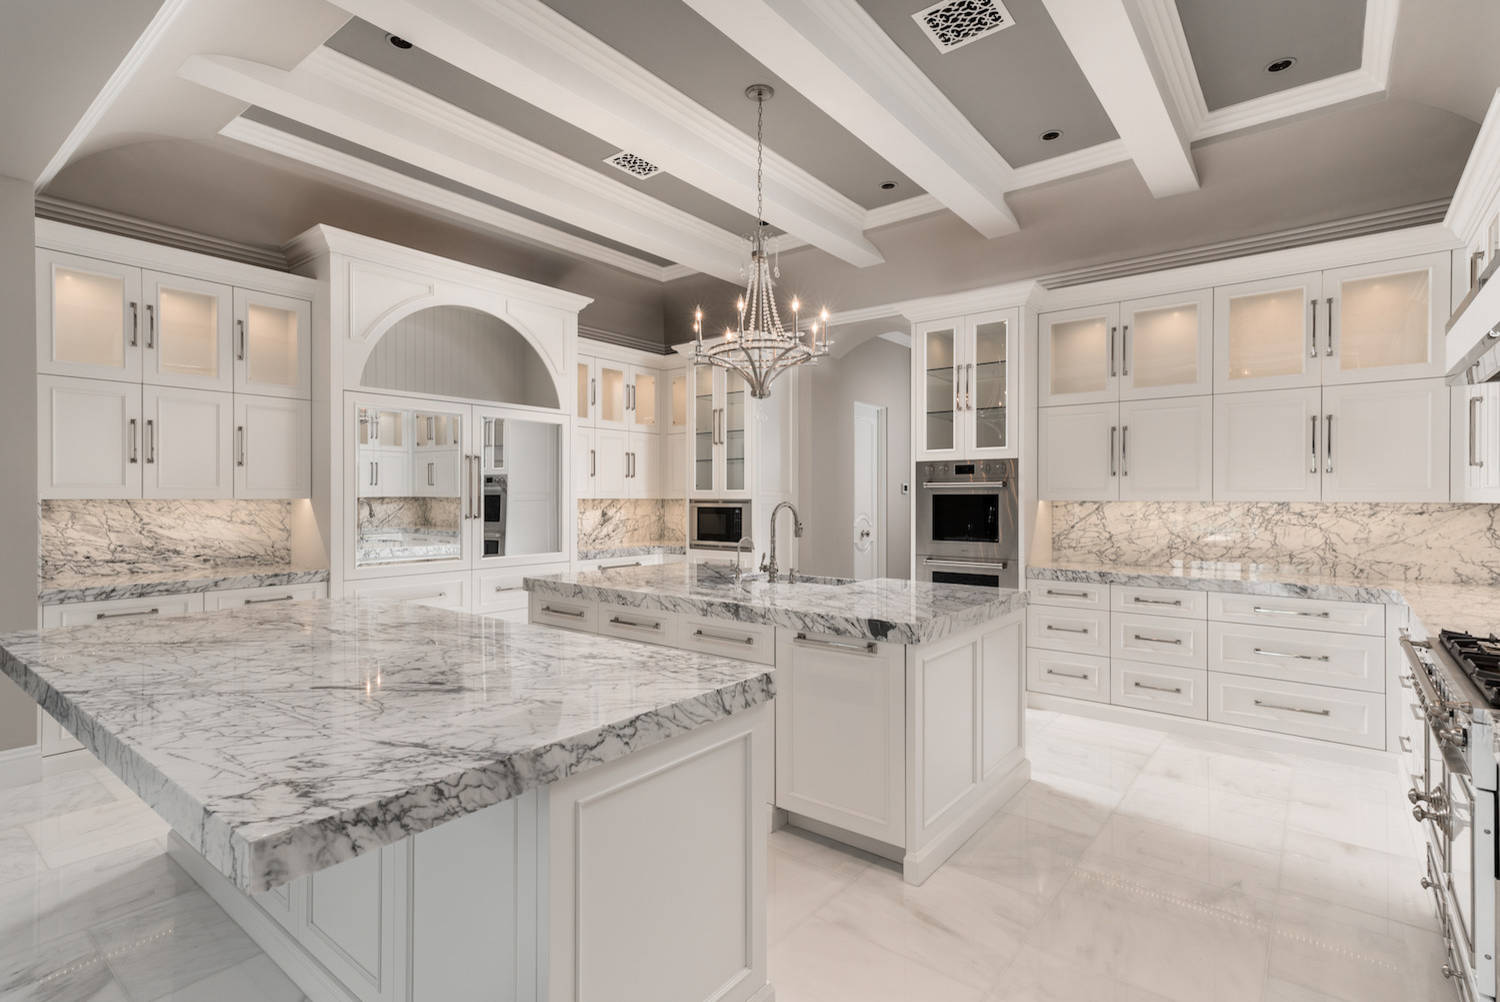 75 Beautiful Modern Marble Floor Kitchen Pictures Ideas December 2020 Houzz